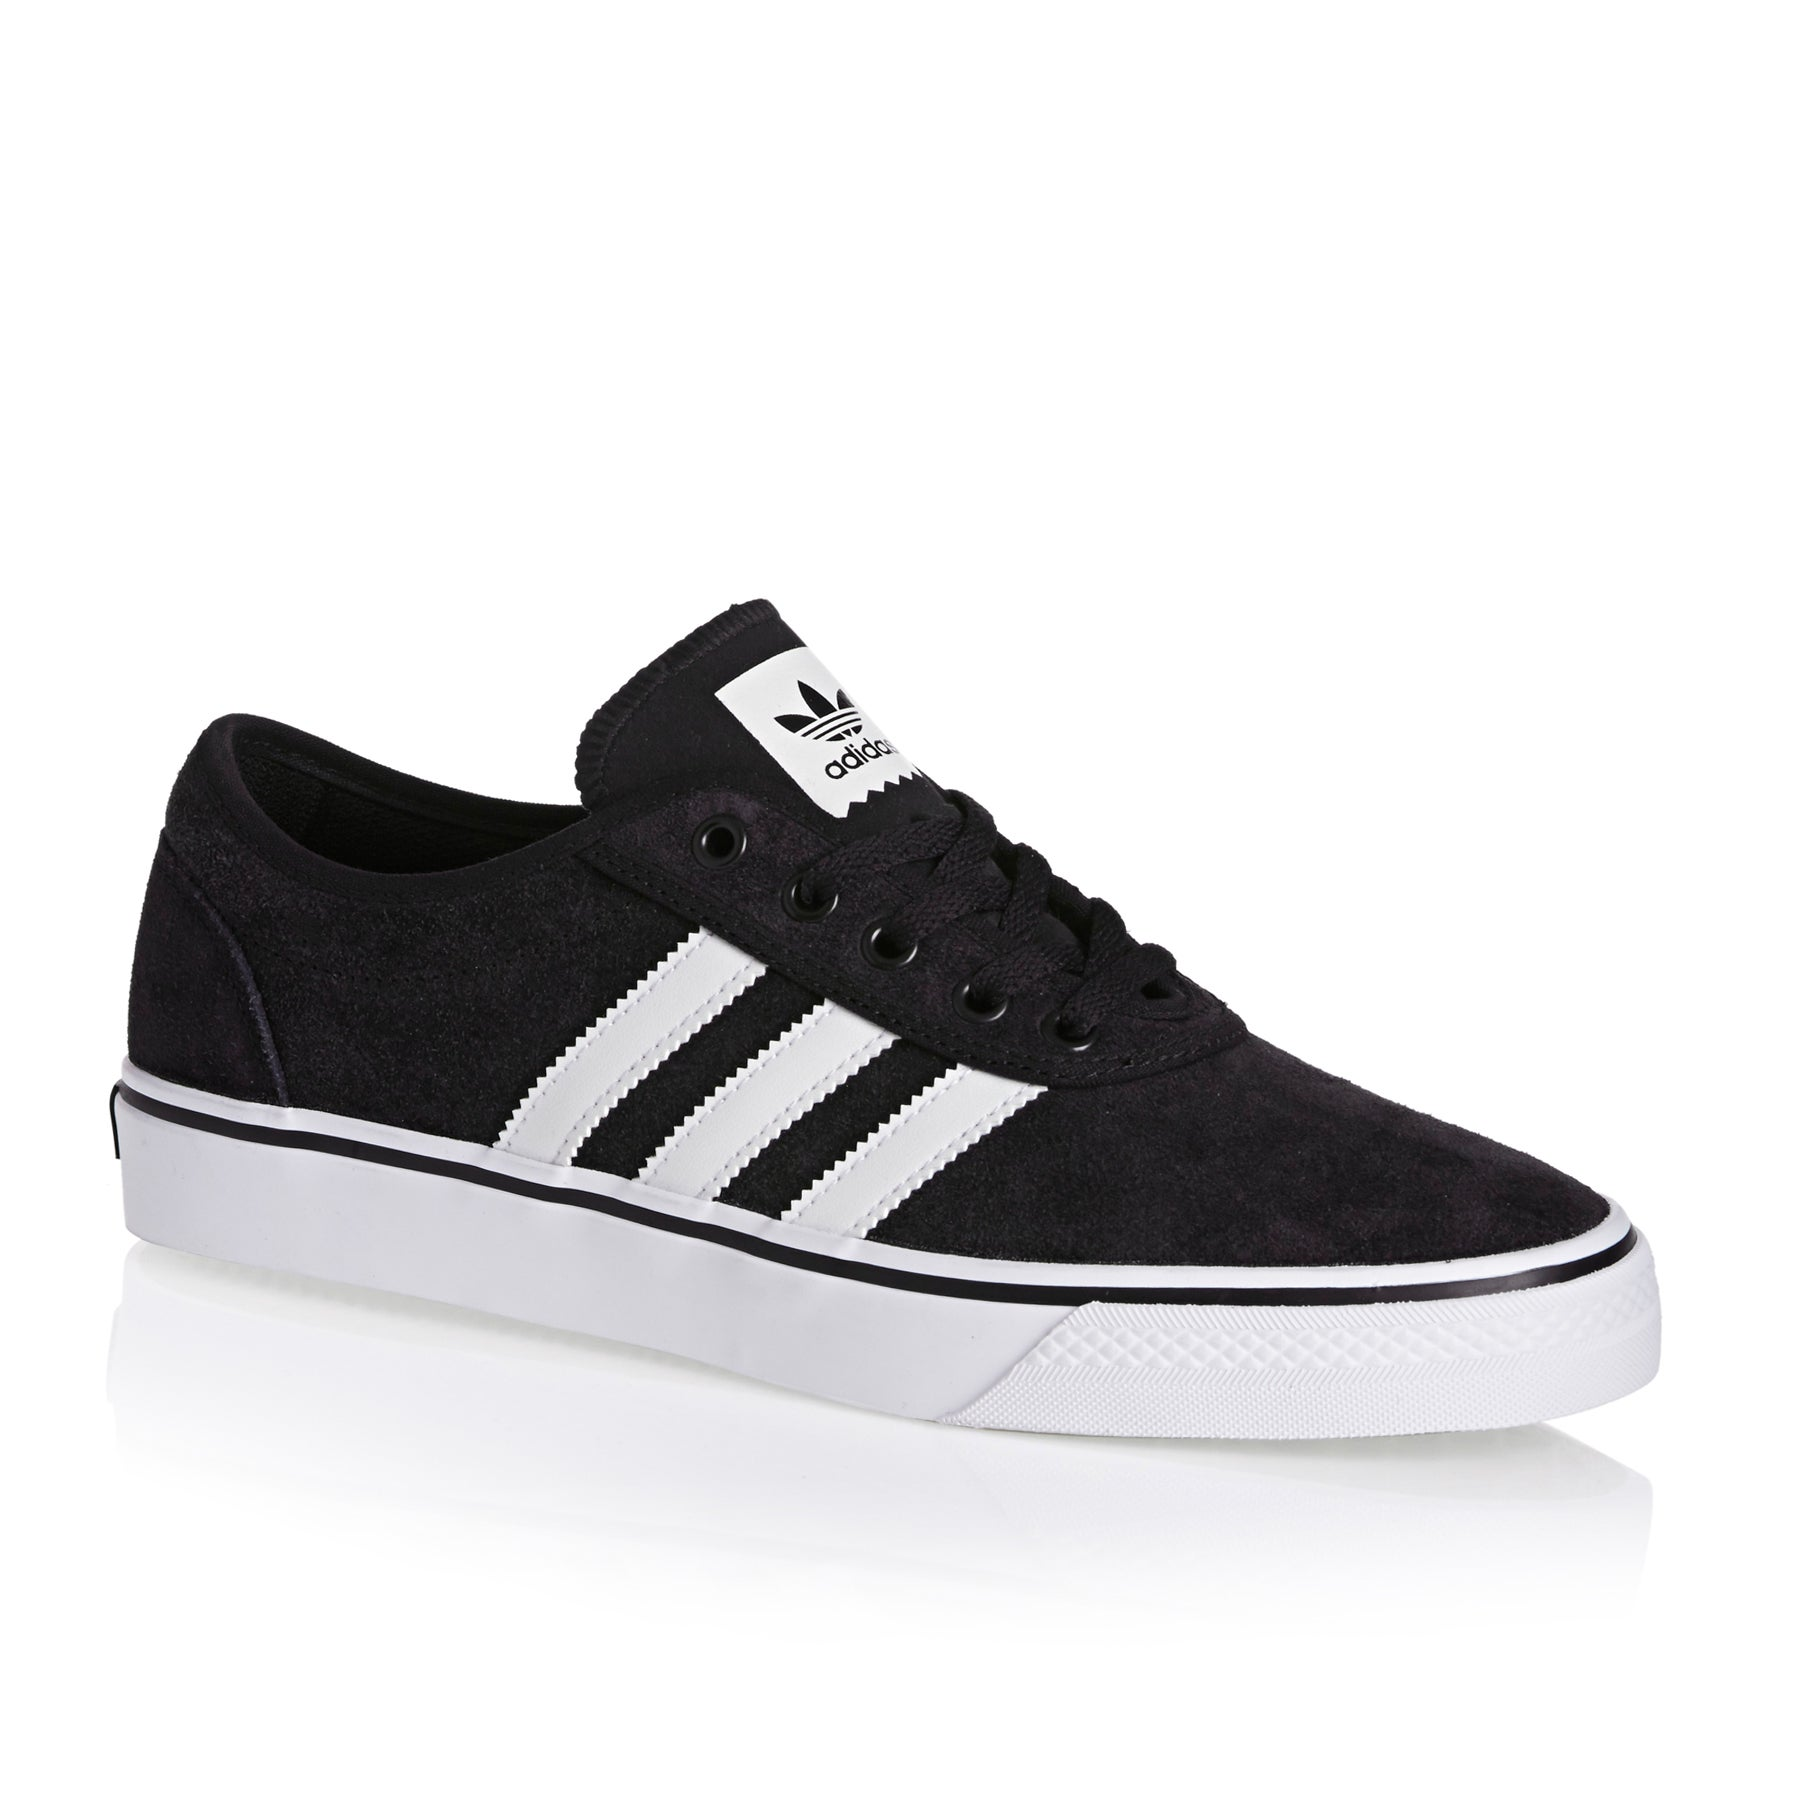 Adidas Originals Adiease Schuhe - Core Black White